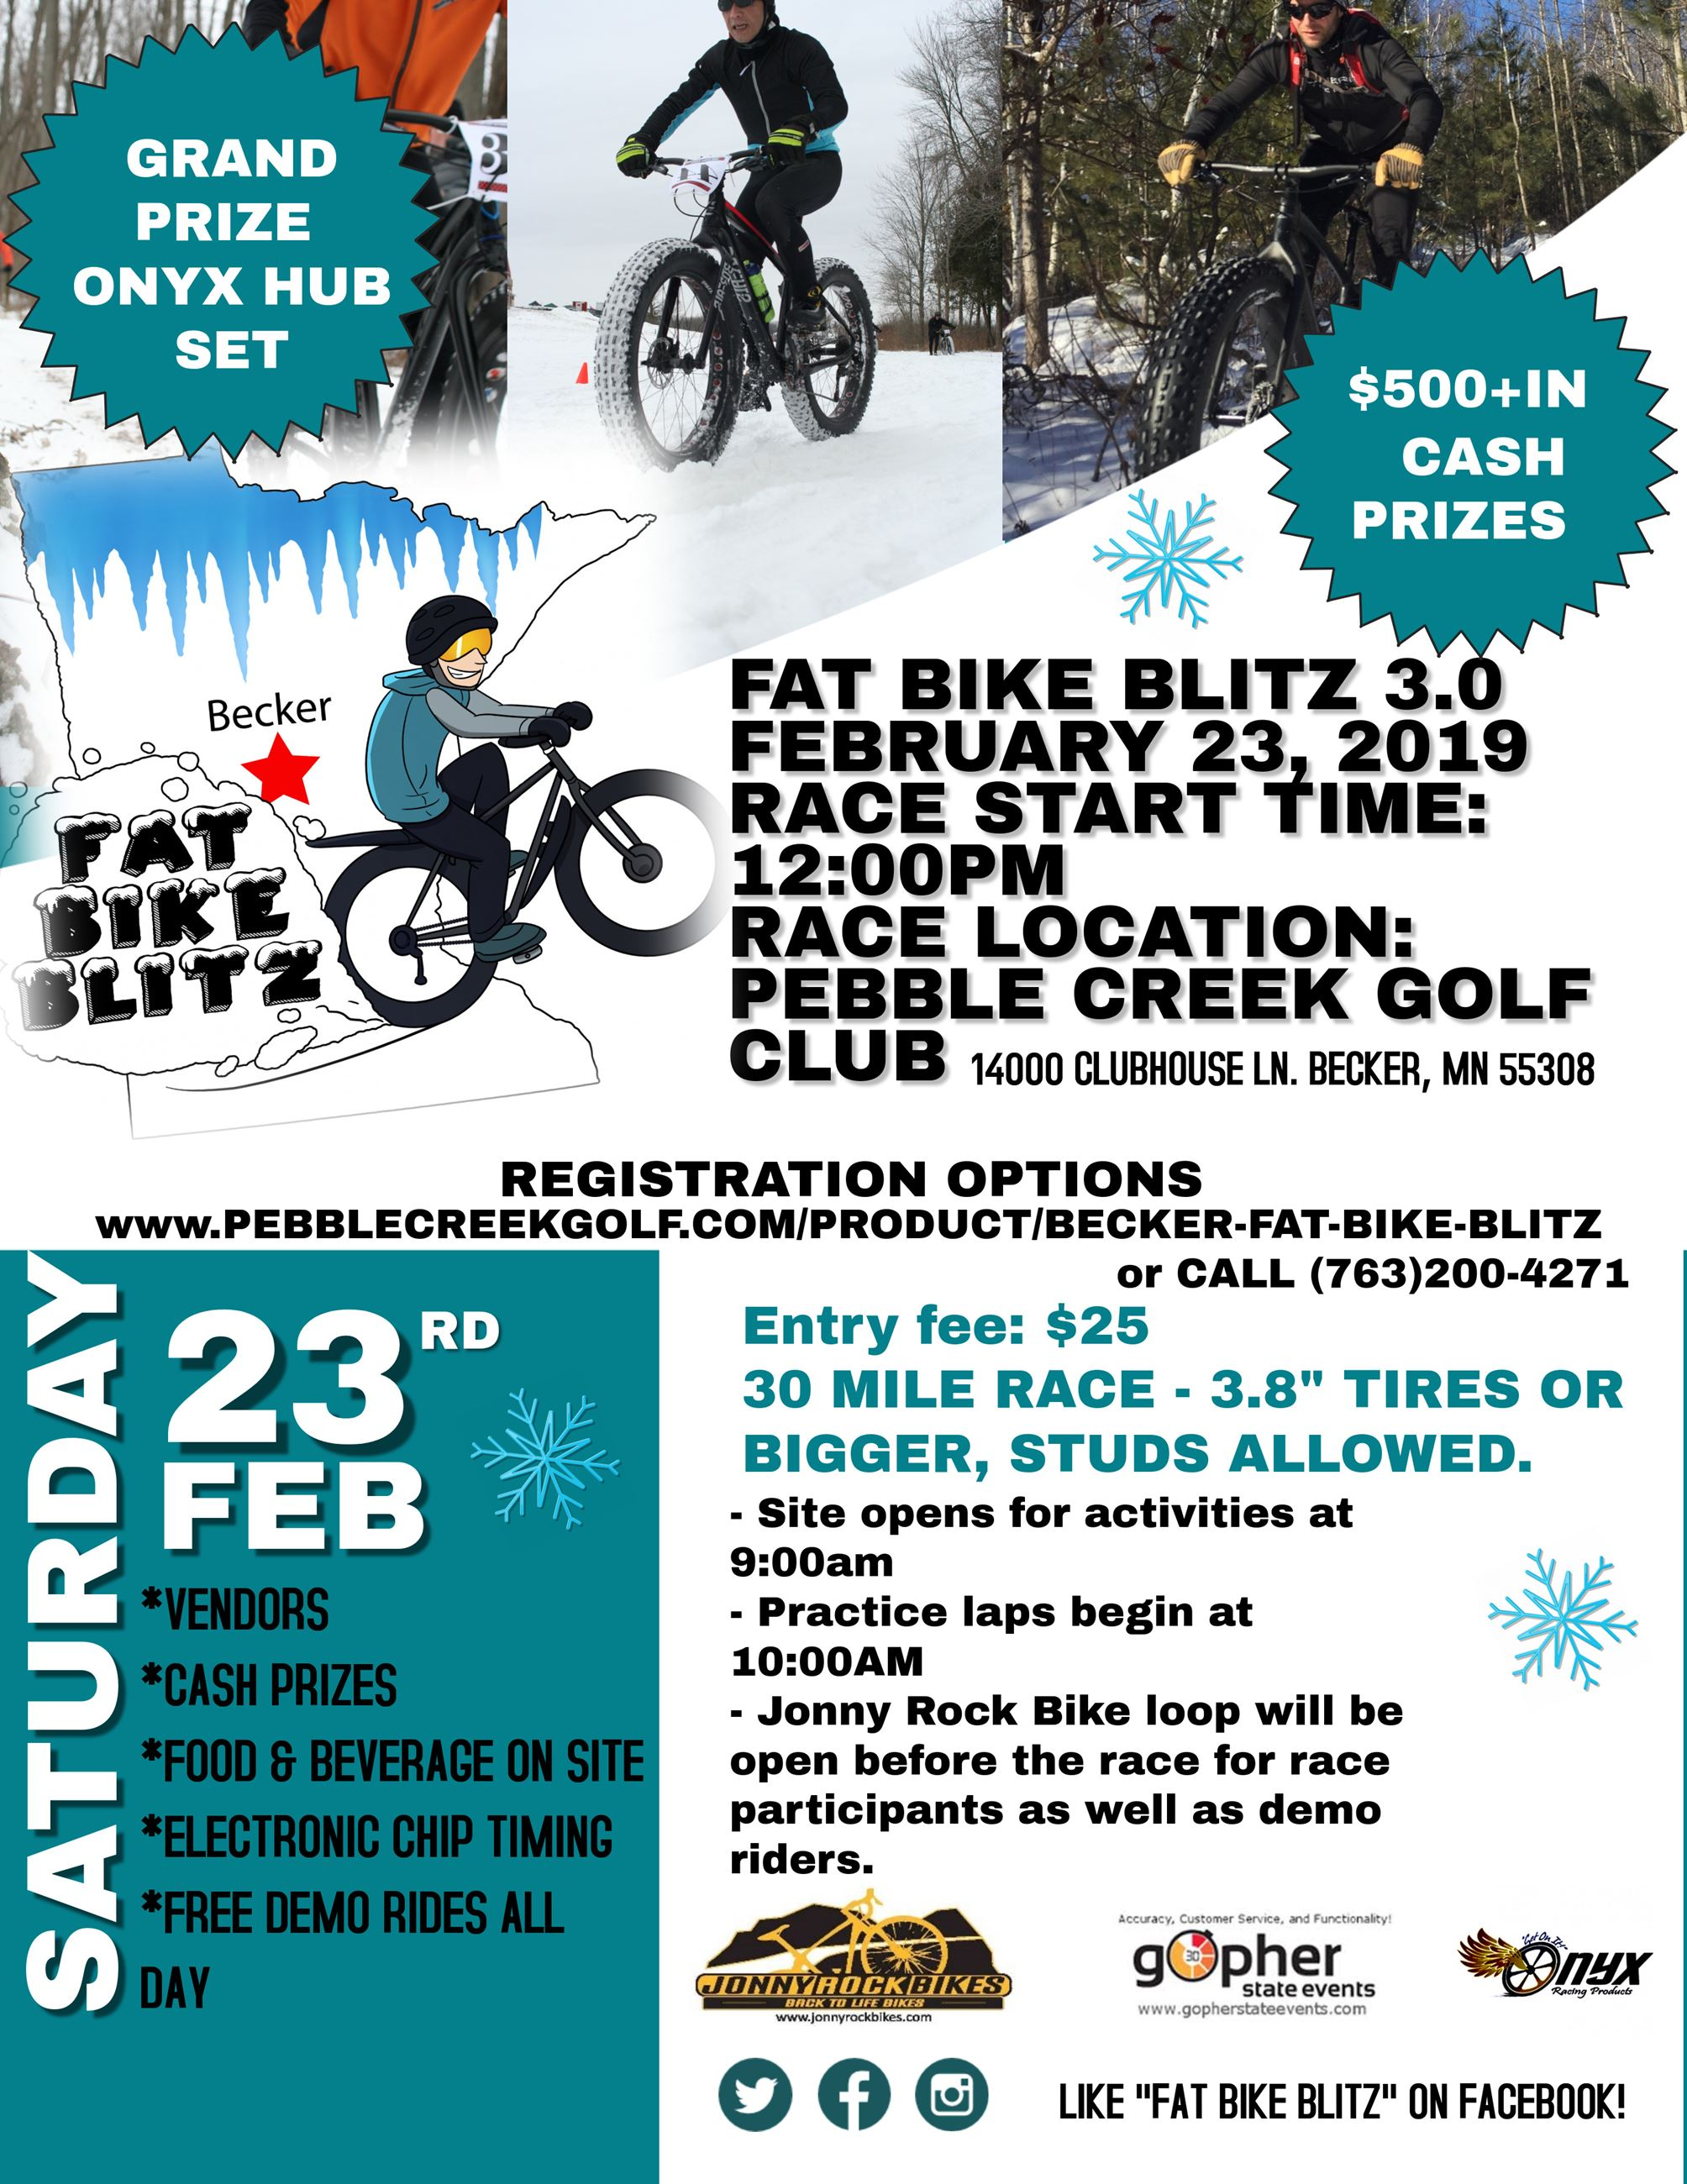 FAT BIKE BLITZ 2019 FLYER